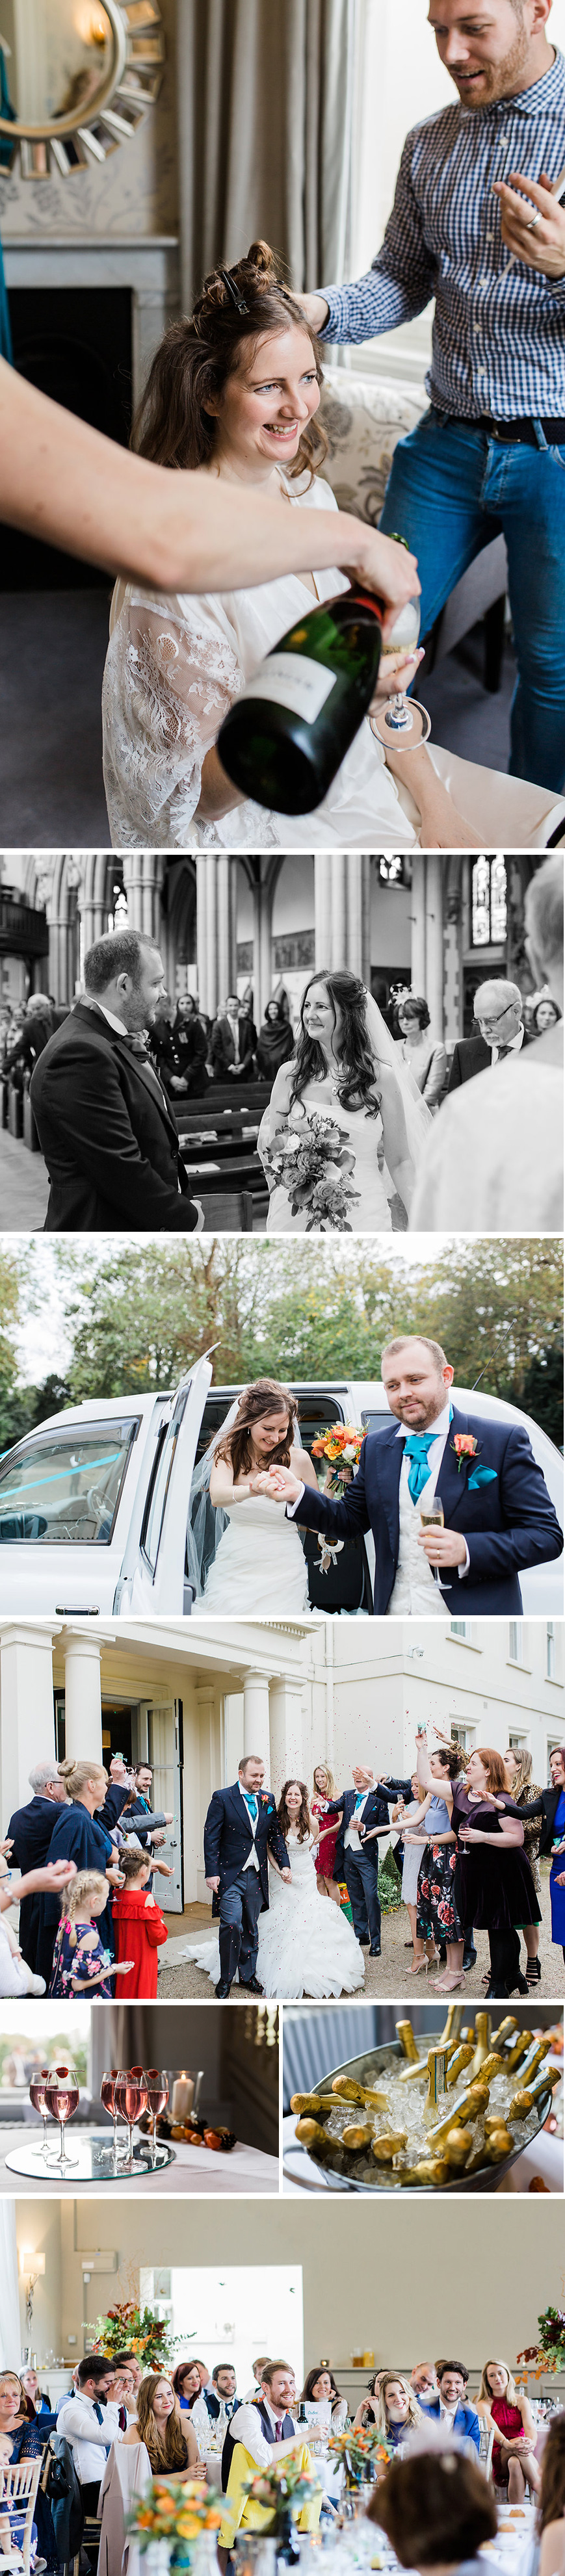 Real Wedding - Danielle & Jack's Autumnal London Wedding at Morden Hall | CHWV